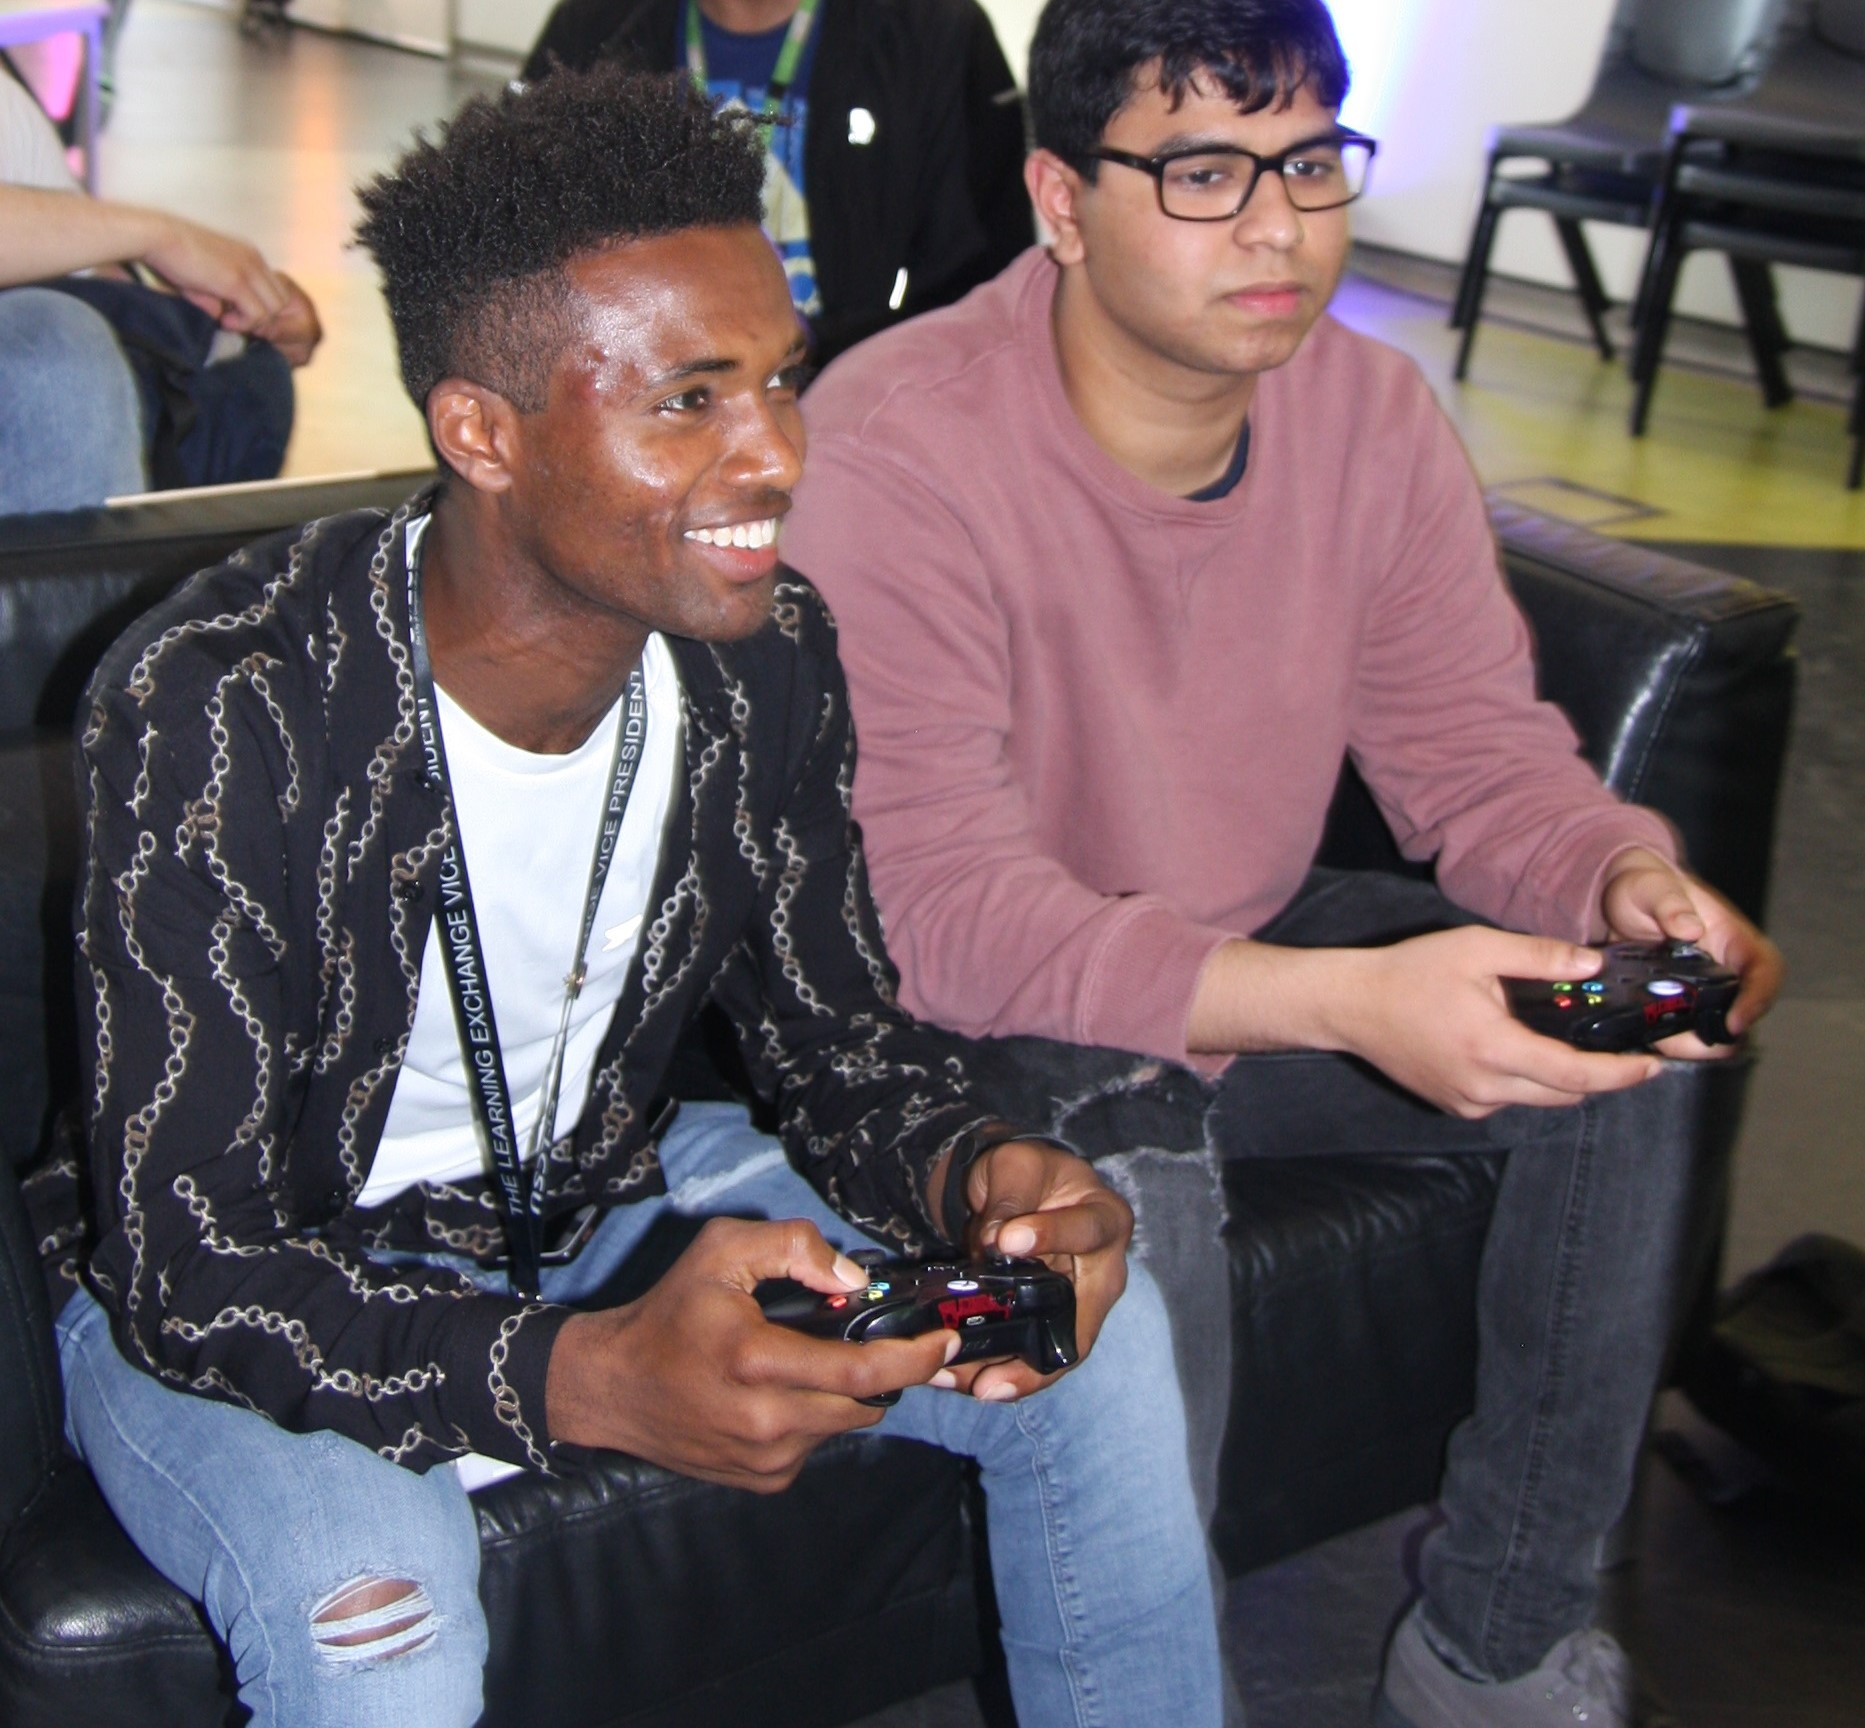 Students playing Xbox in gaming society